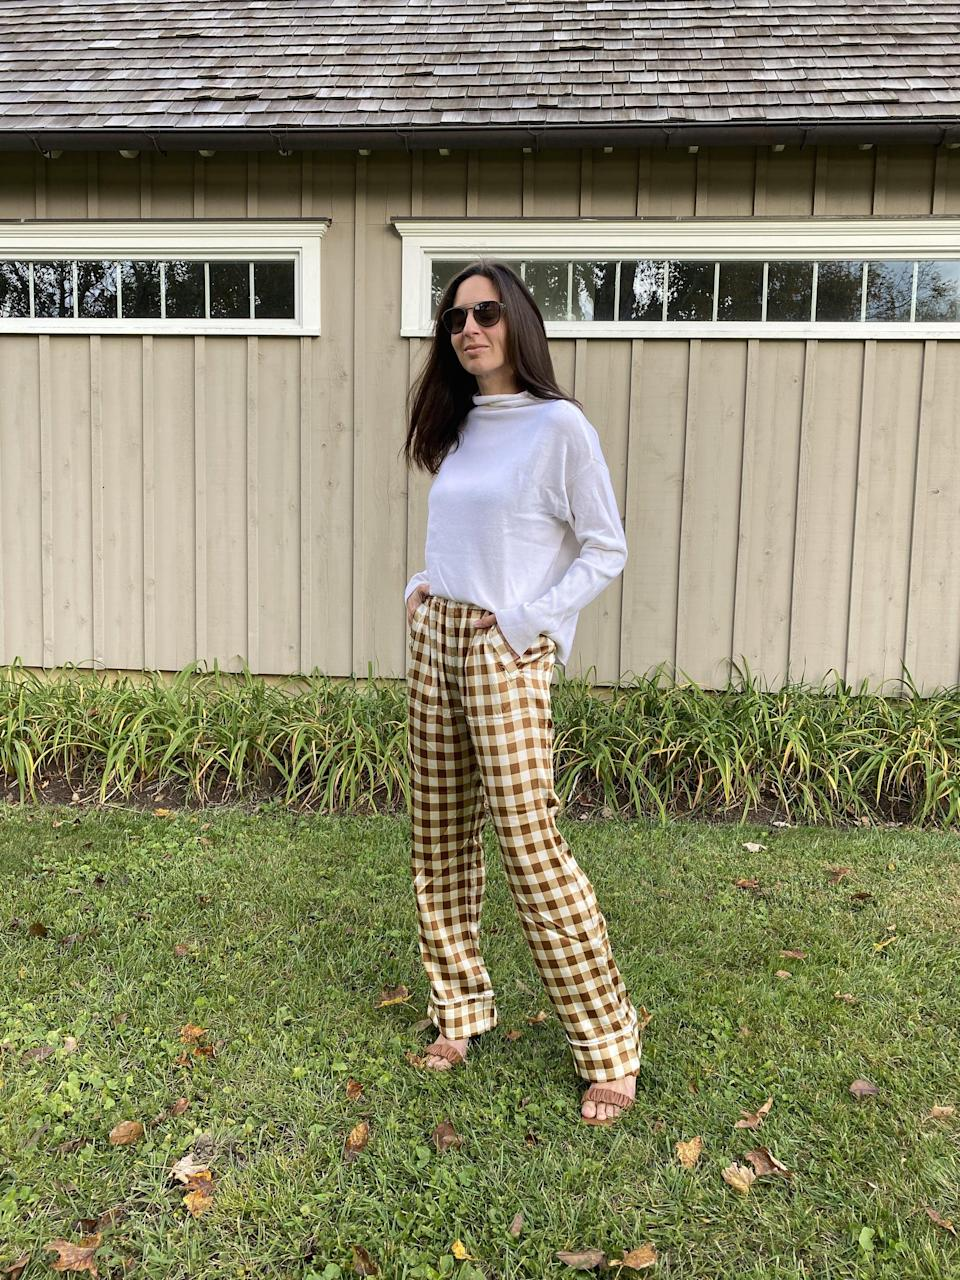 "<p>""I am looking for subtle prints that will help elevate neutrals I already own, like checks and plaids. Everything has to have an uncomplicated fit and be something that I can wear often. I am being much more thoughtful about my purchases and I don't want them to be limited to a single season's wardrobe.""</p>"